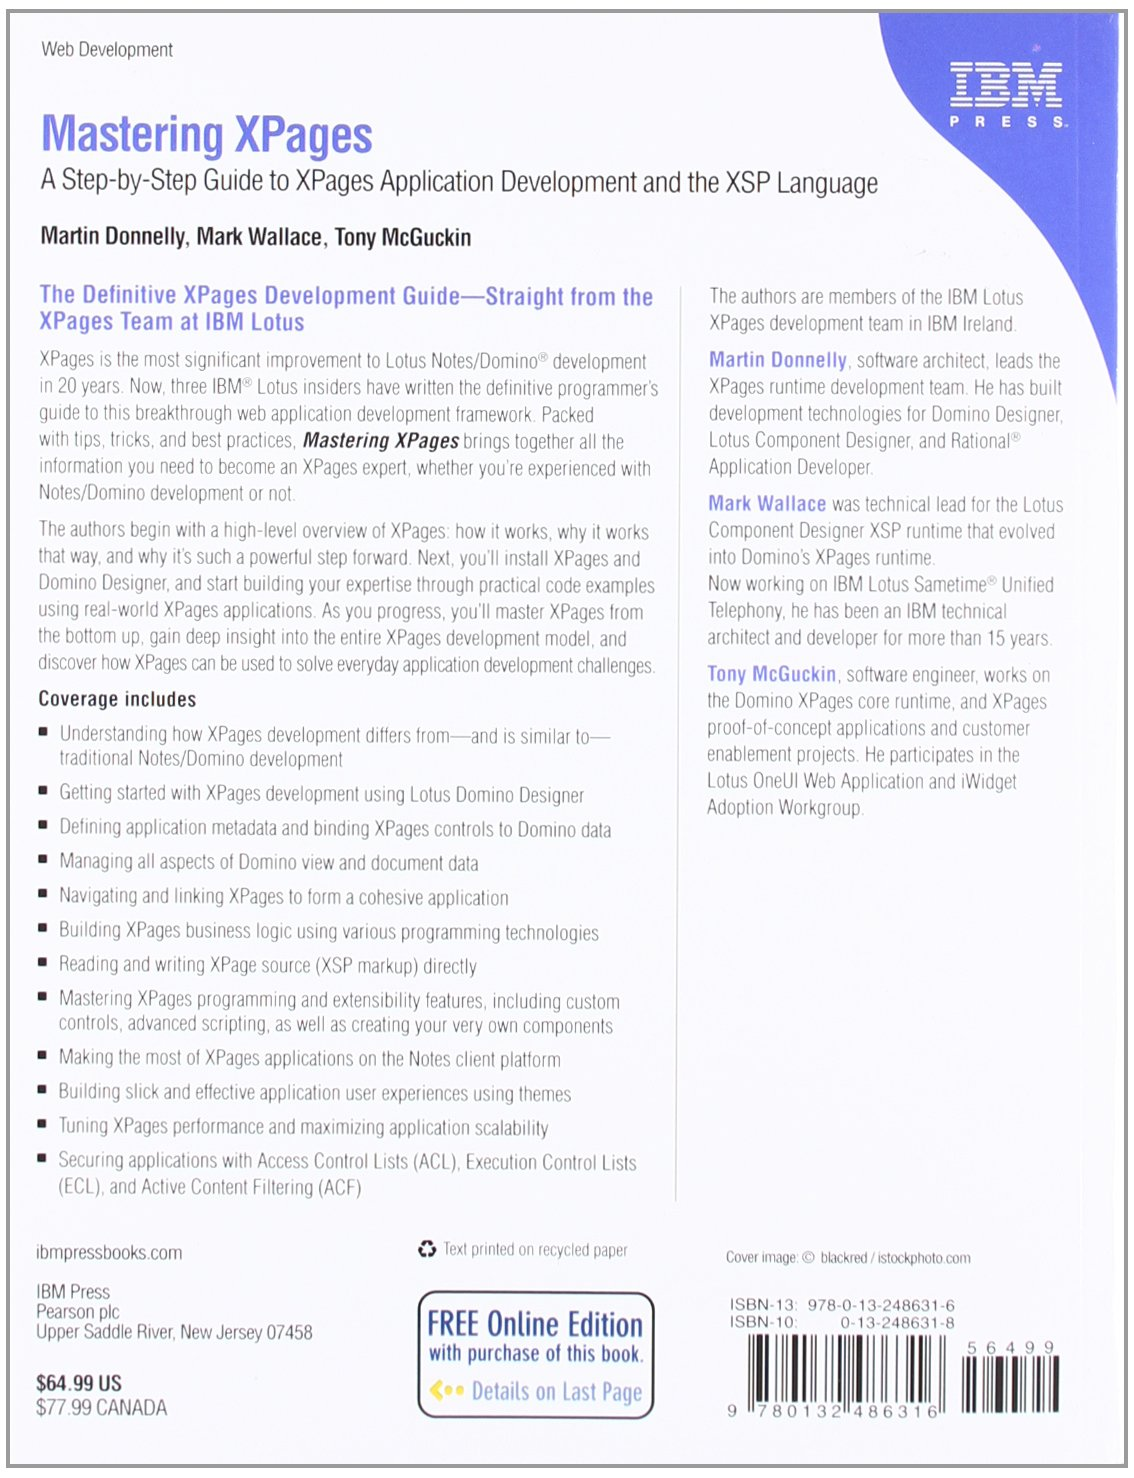 Mastering xpages a step by step guide to xpages application mastering xpages a step by step guide to xpages application development and the xsp language amazon martin donnelly mark wallace tony mcguckin fandeluxe Epub